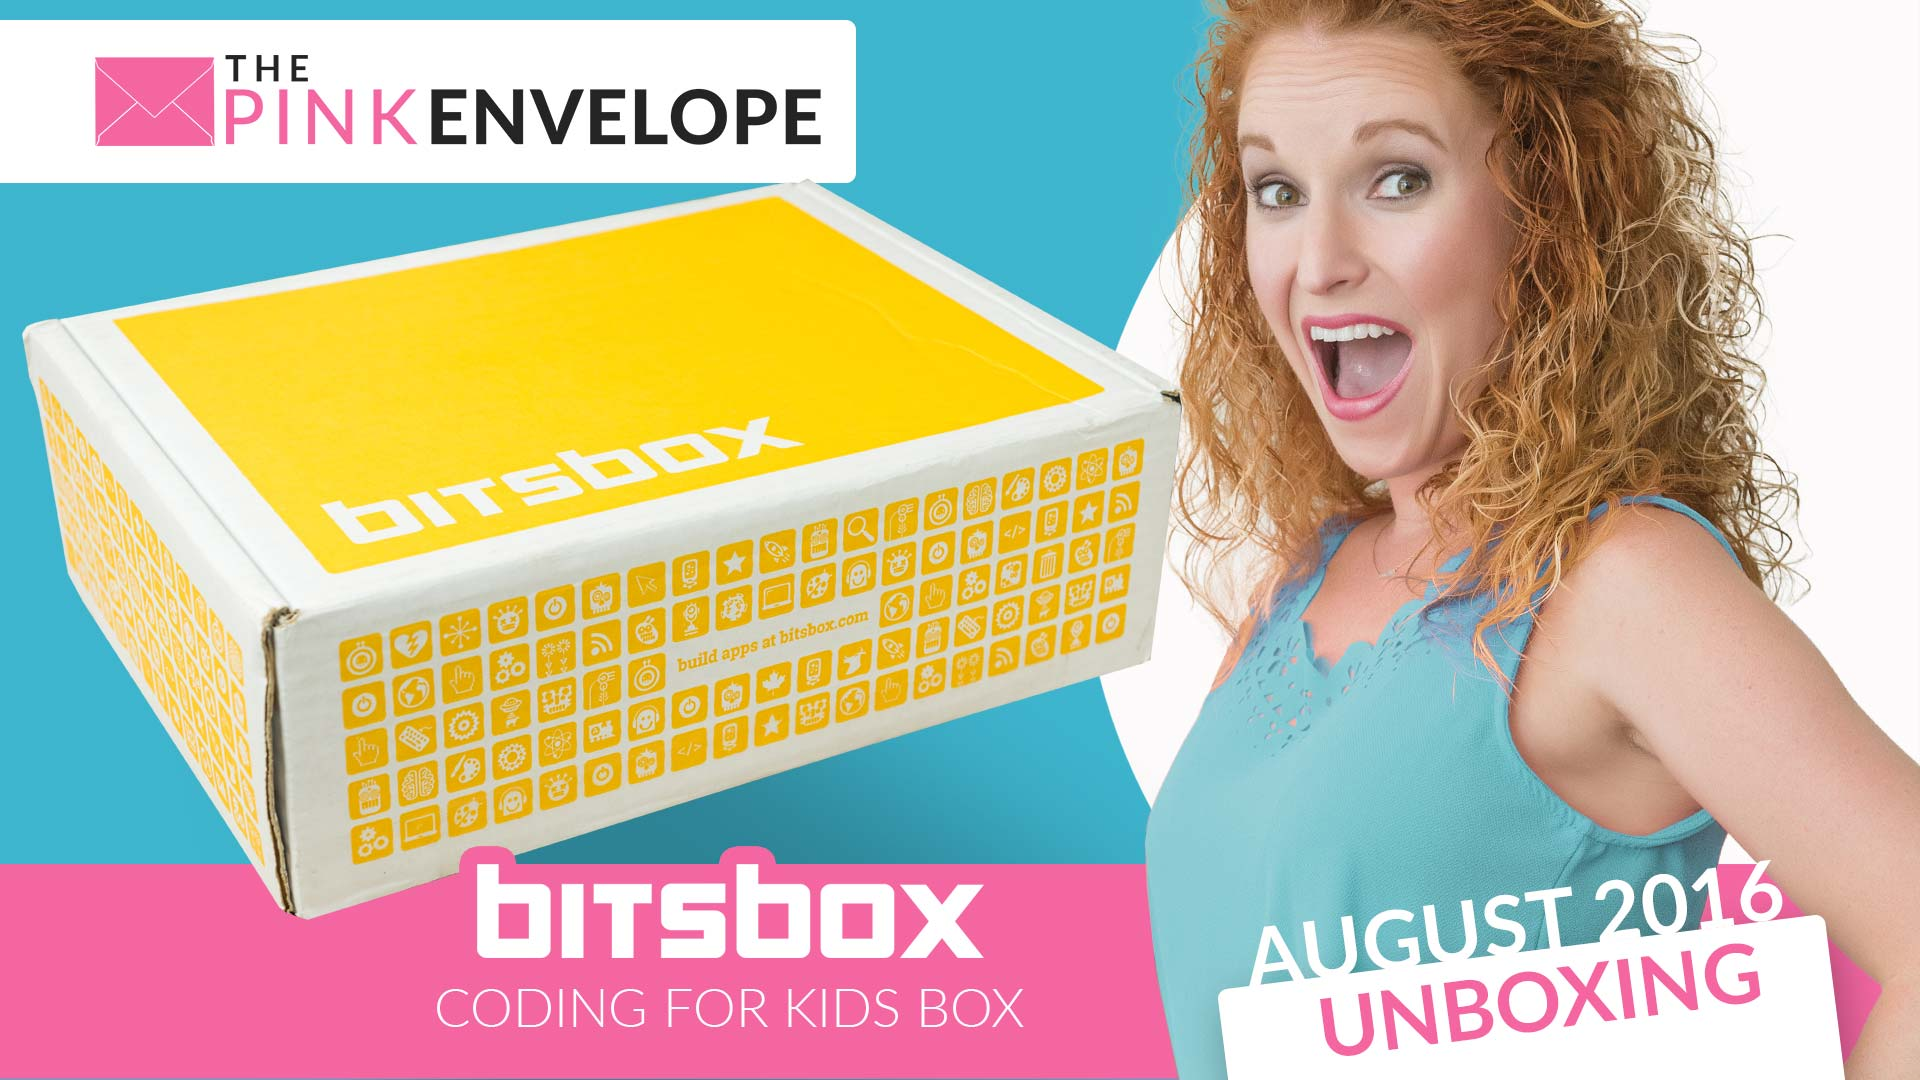 BitsBox Review – August 2016